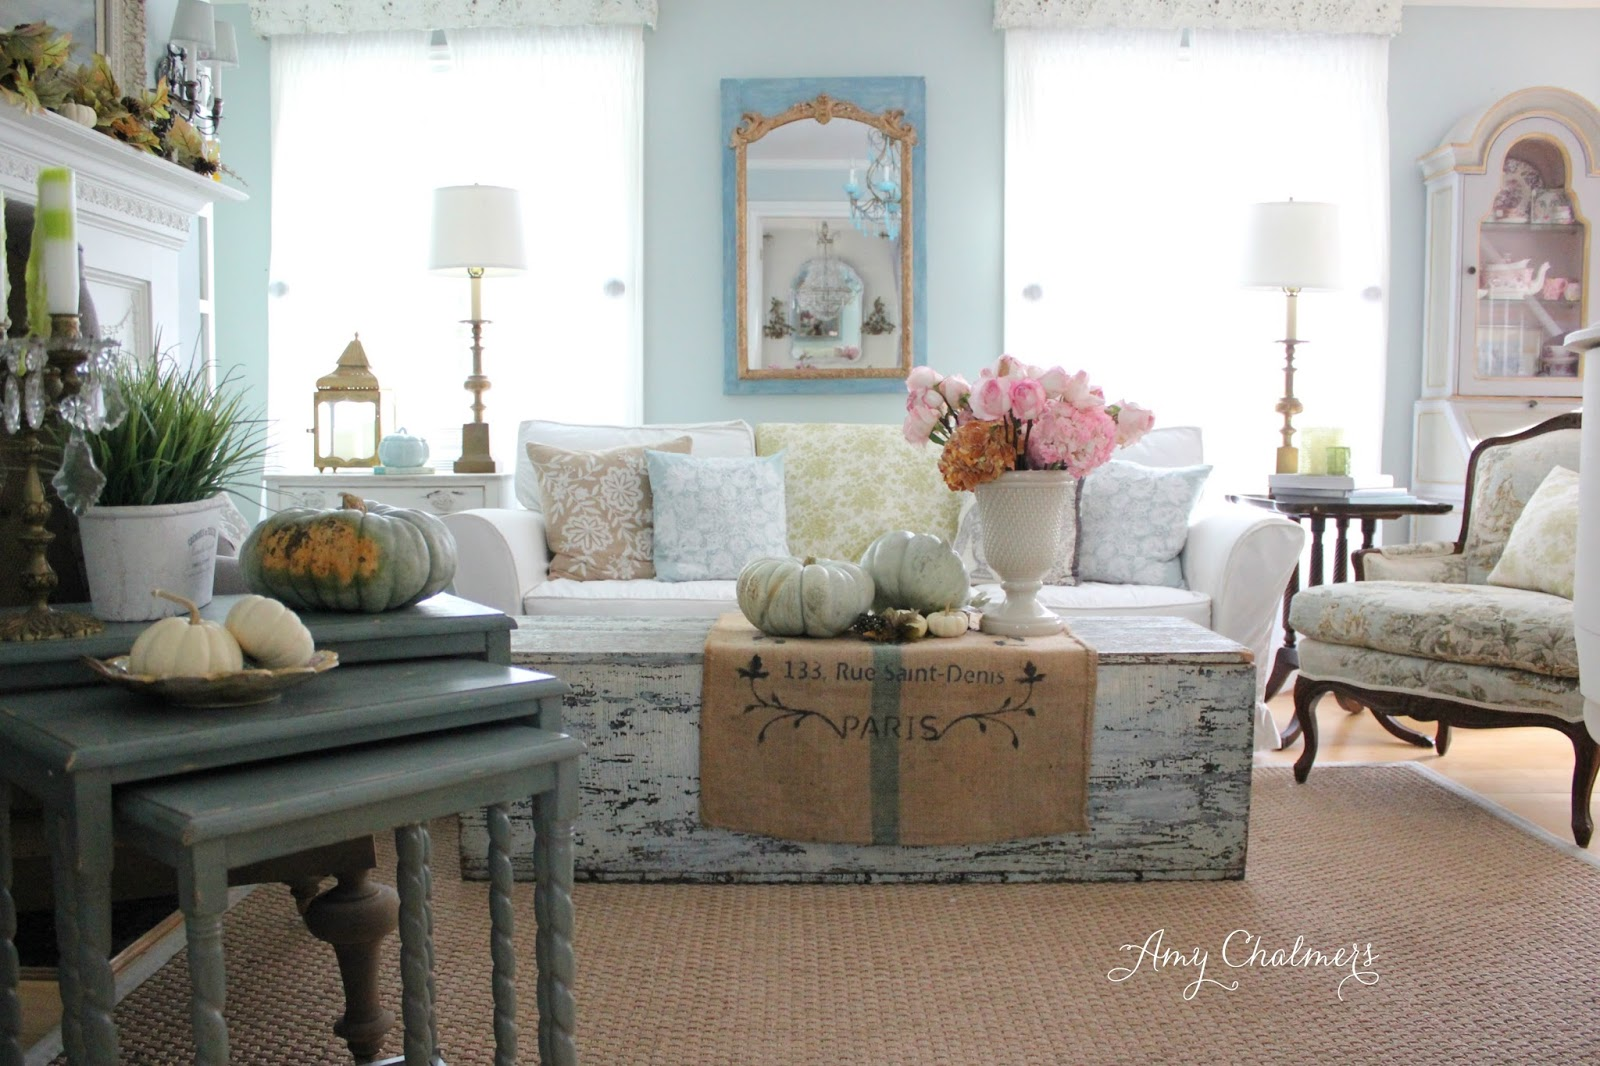 Maison Decor A Fall French Country Home Tour With Soft